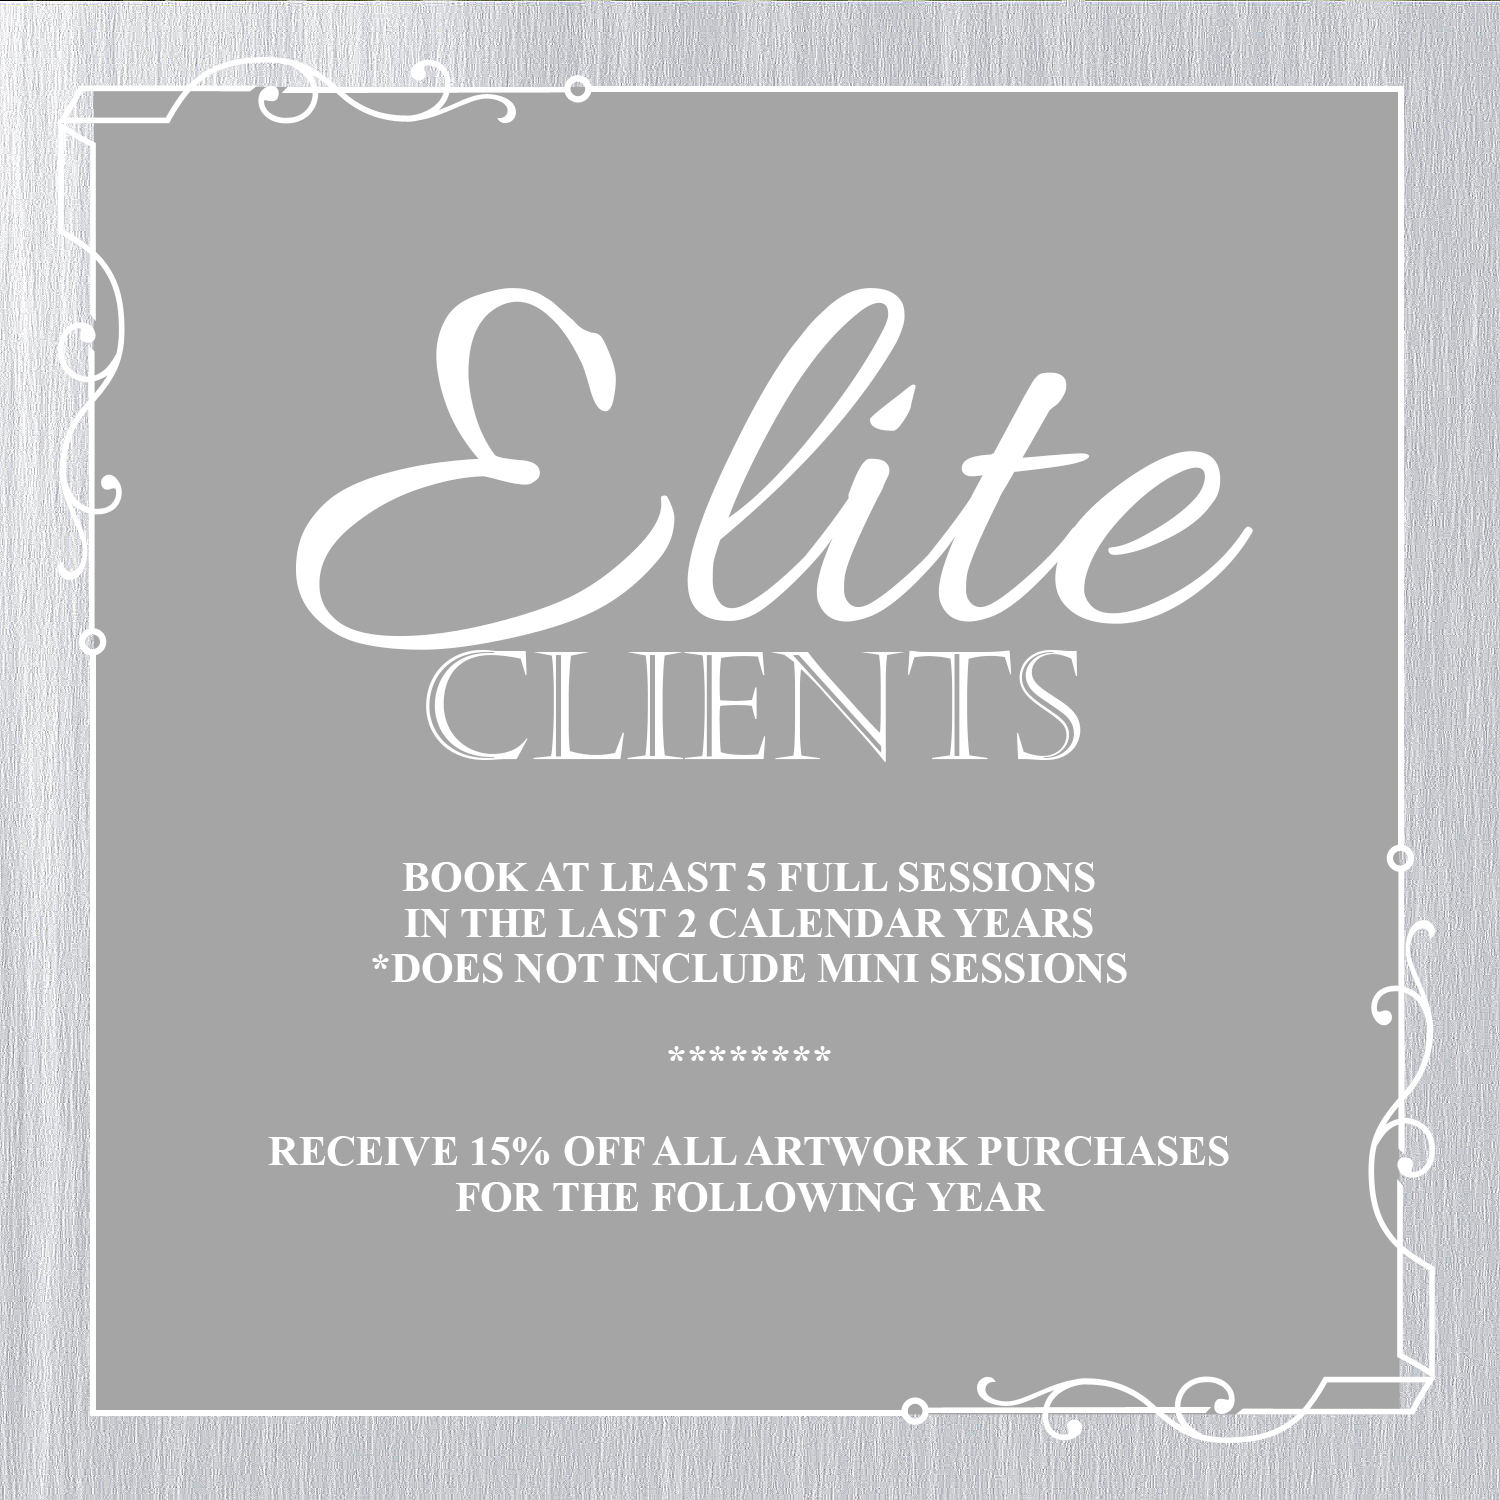 ELITE CLIENTS - Elite Clients must have booked at least 5 full sessions in the previous 2 calendar years. Themed mini sessions (Holiday, Summer, Seasonal, etc.) do not quality for achieving Elite Client status.Emails for qualifying clients will be sent out every January. Your 15% off counts towards any new sessions booked in the calendar year you received your email.